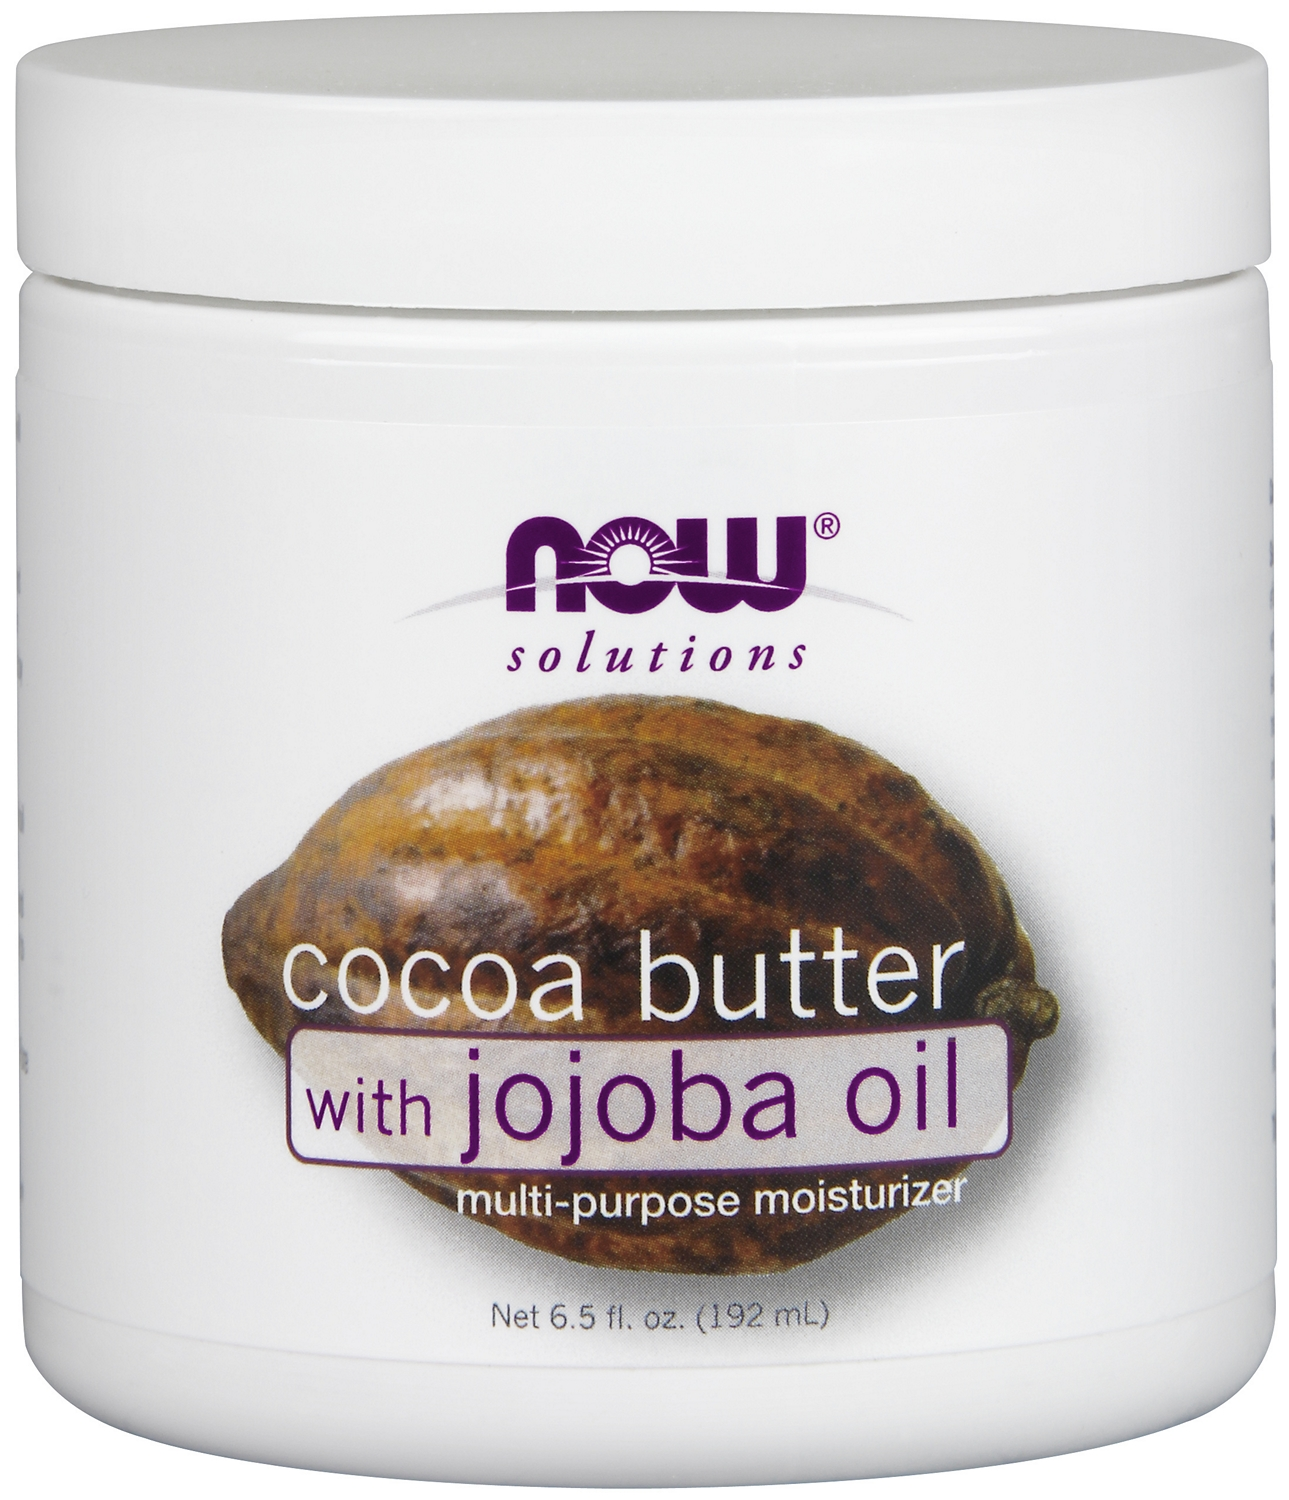 Cocoa Butter with Jojoba Oil 6.5 fl oz (192 ml) by NOW